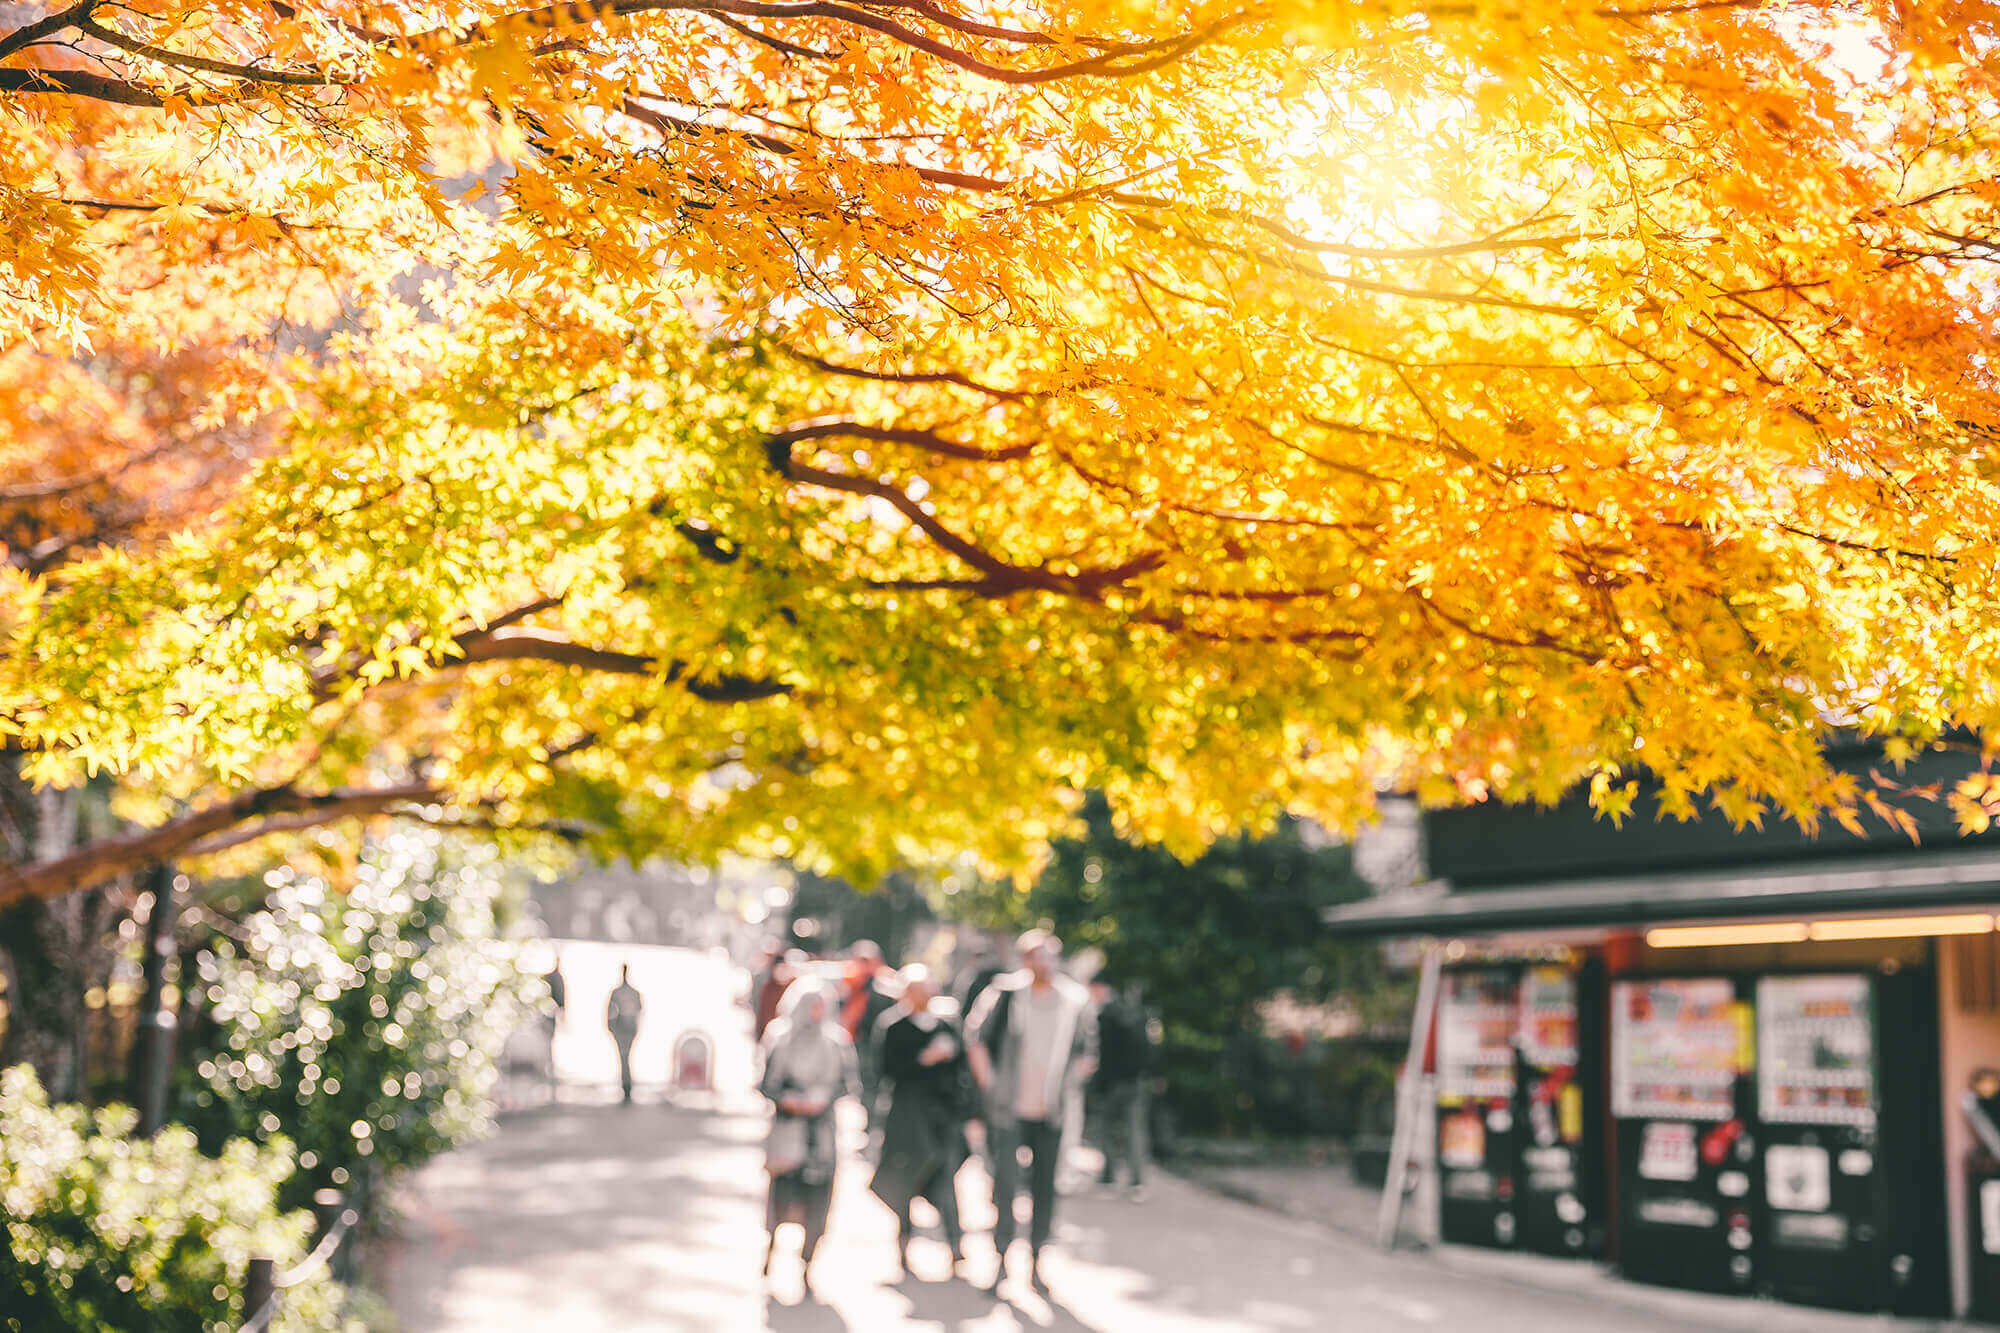 People walking under an autumnal tree